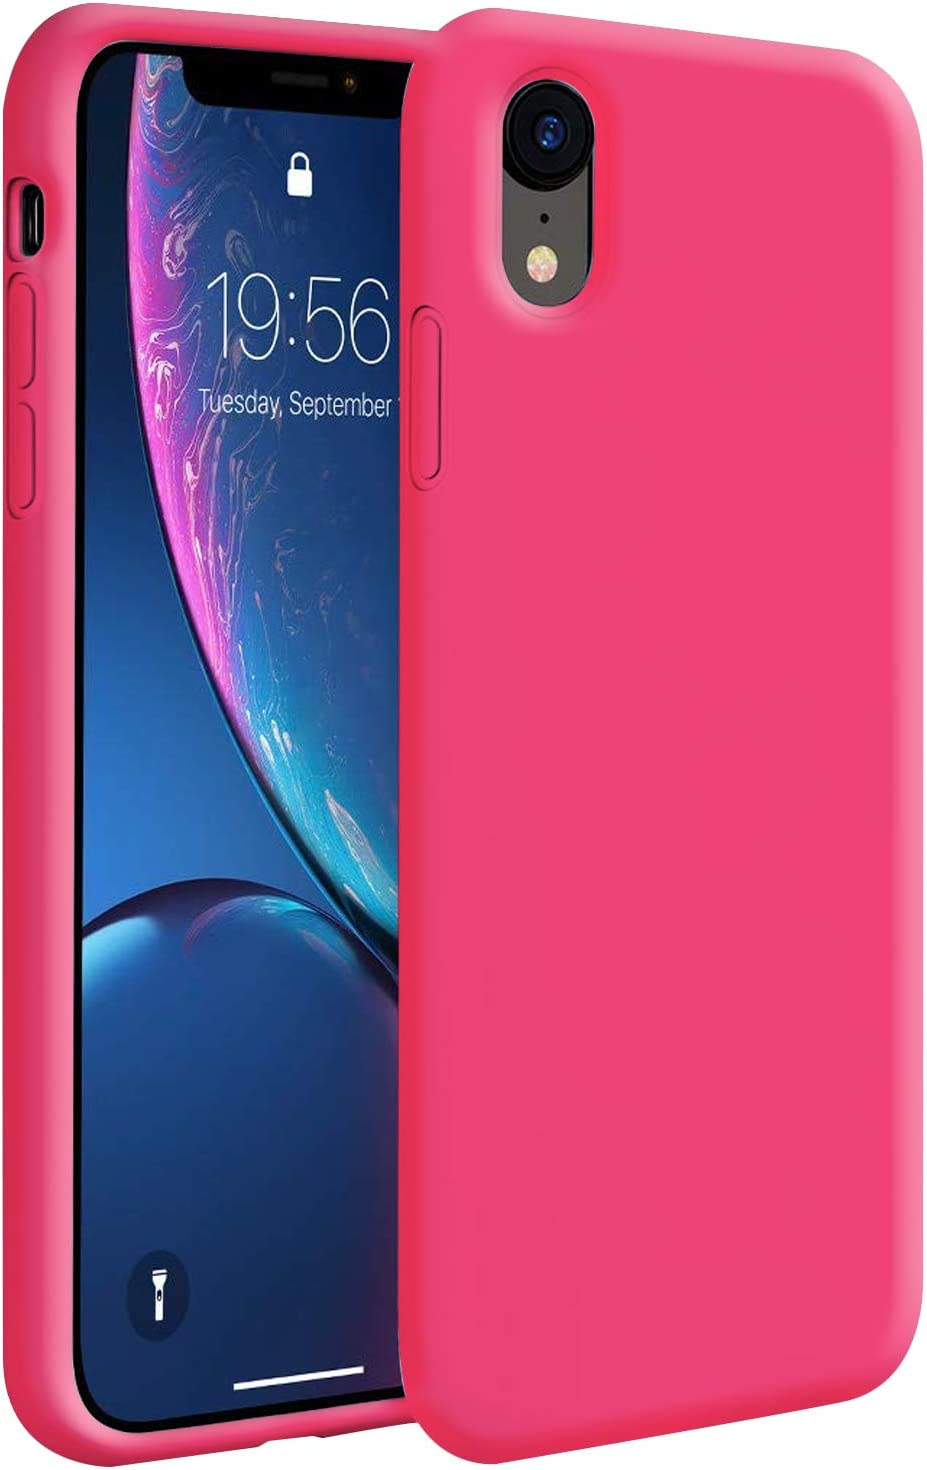 iPhone XR Case,Zuslab Soft Slim Thin Silicone Gel Rubber Bumper Cover for Apple iPhone XR Phone Hard Shell Shockproof Full-Body Protective Case - Hot Pink